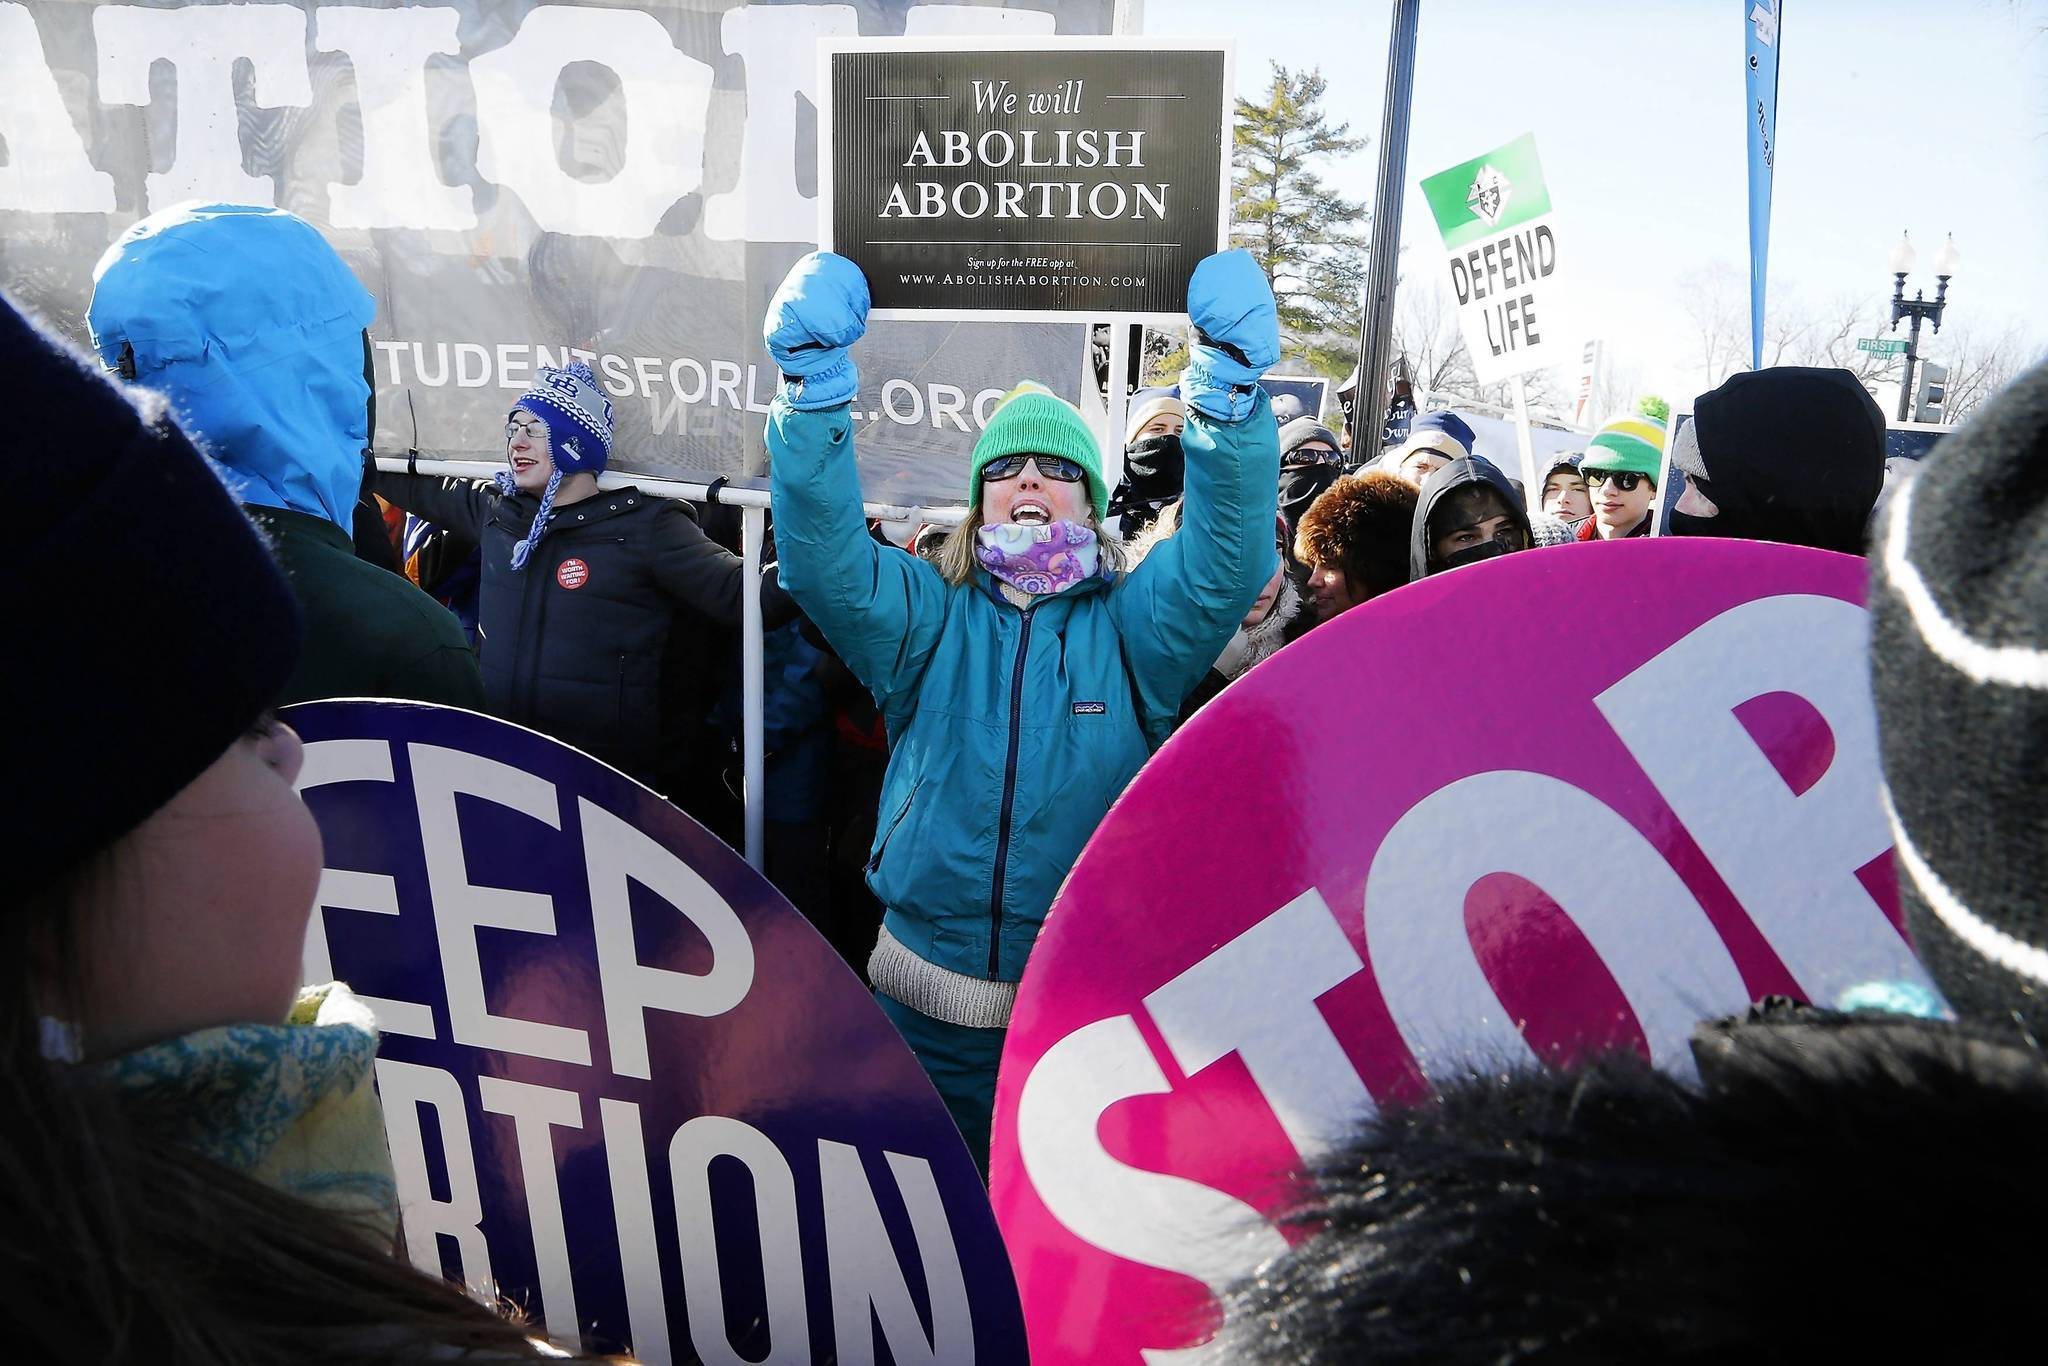 There were nearly half a million fewer abortions in 2011 than in 1991, according to a new study.